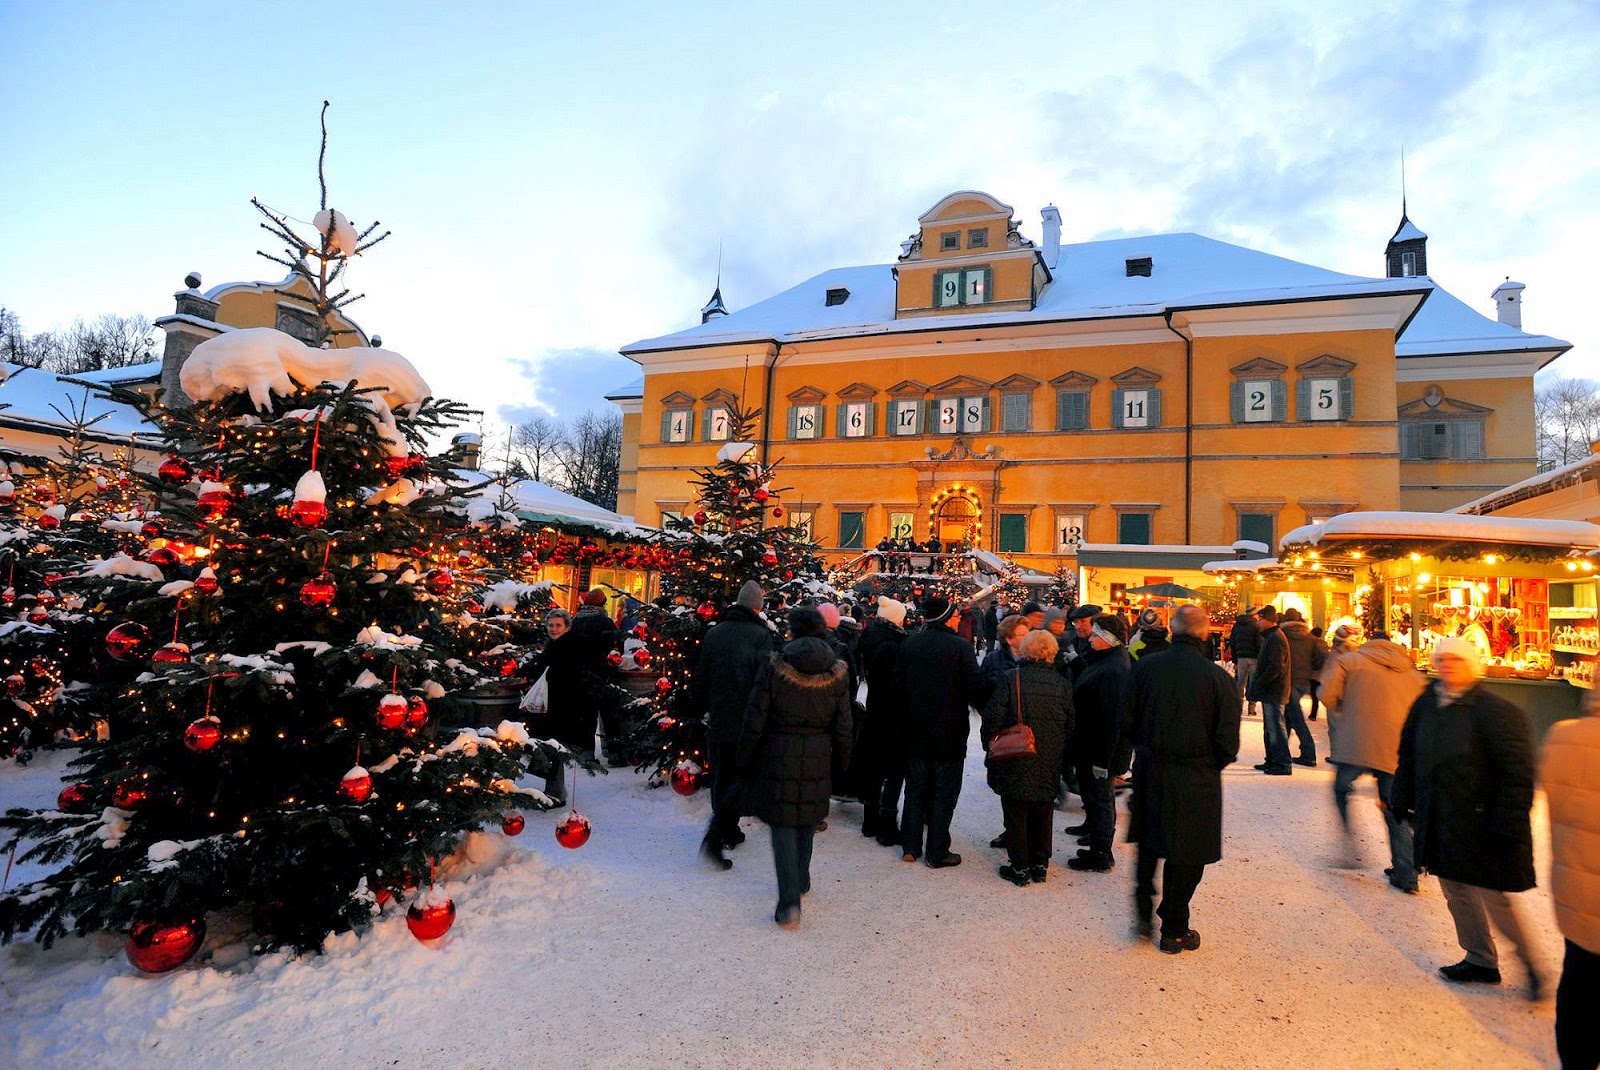 Christmas Market in front of Hellbrunn Palace near Salzburg. Photo: © Hellbrunn Adventzauber. Unauthorized use is prohibited.